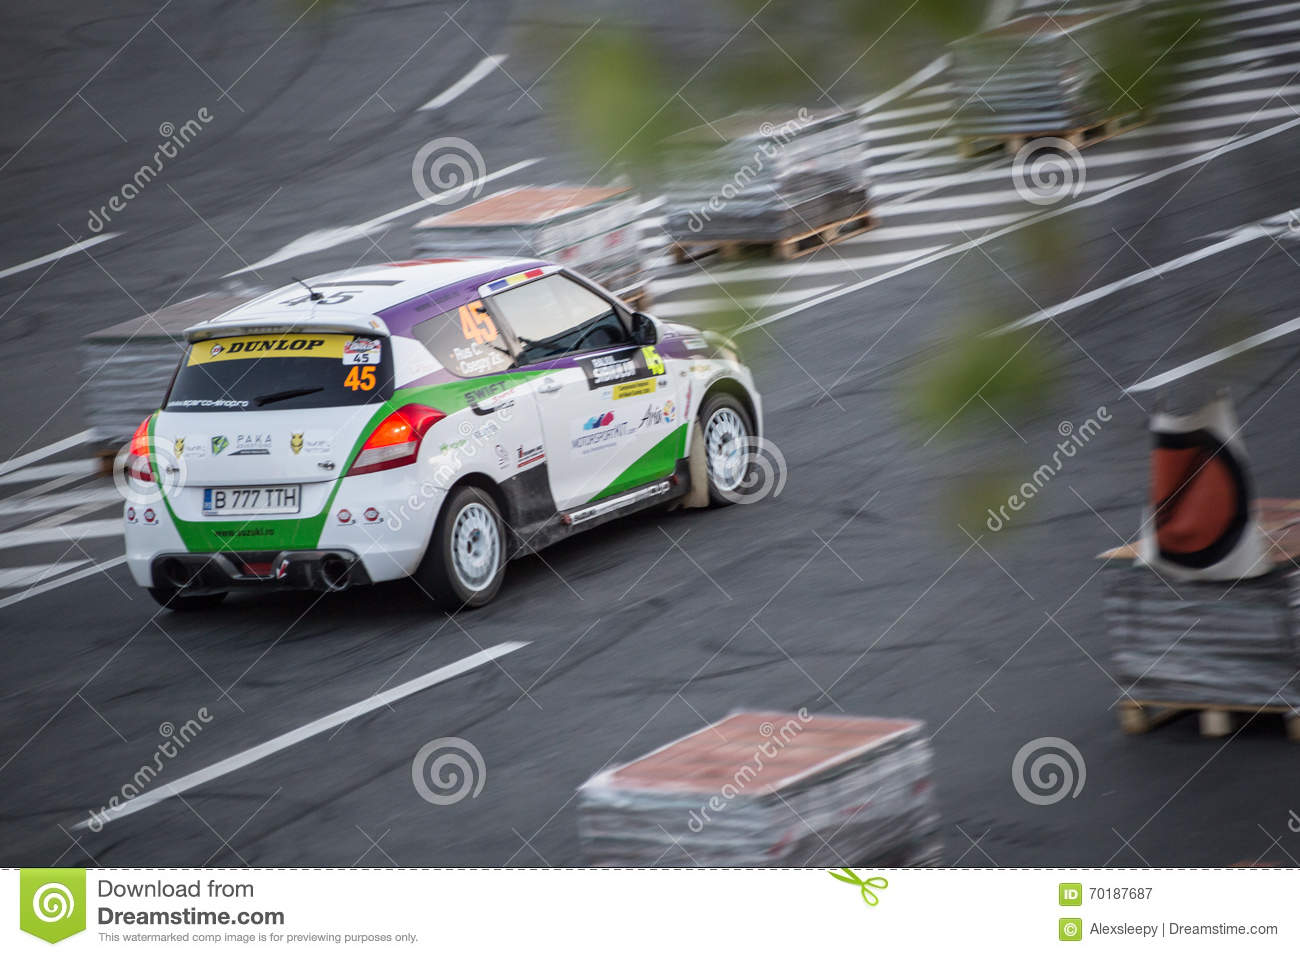 Is Race Car Driving An Extreme Sport